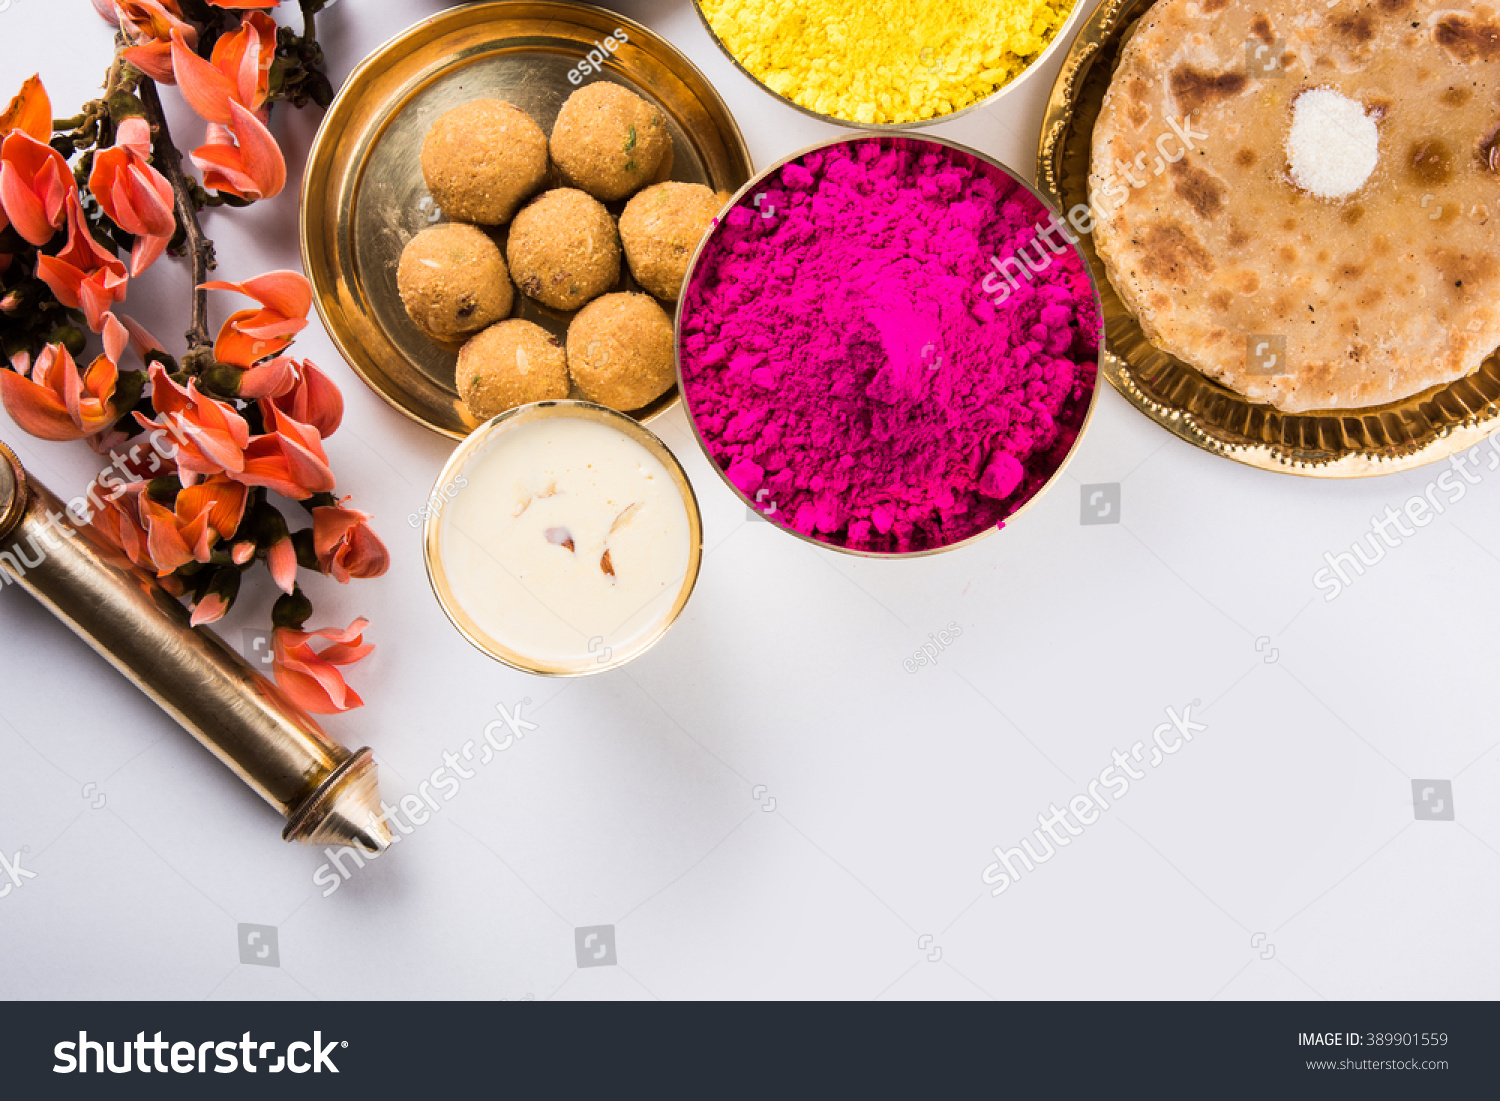 Happy holi greeting card designed showing stock photo image happy holi greeting card designed showing indian traditional sweet and salty food flowers and powder forumfinder Images